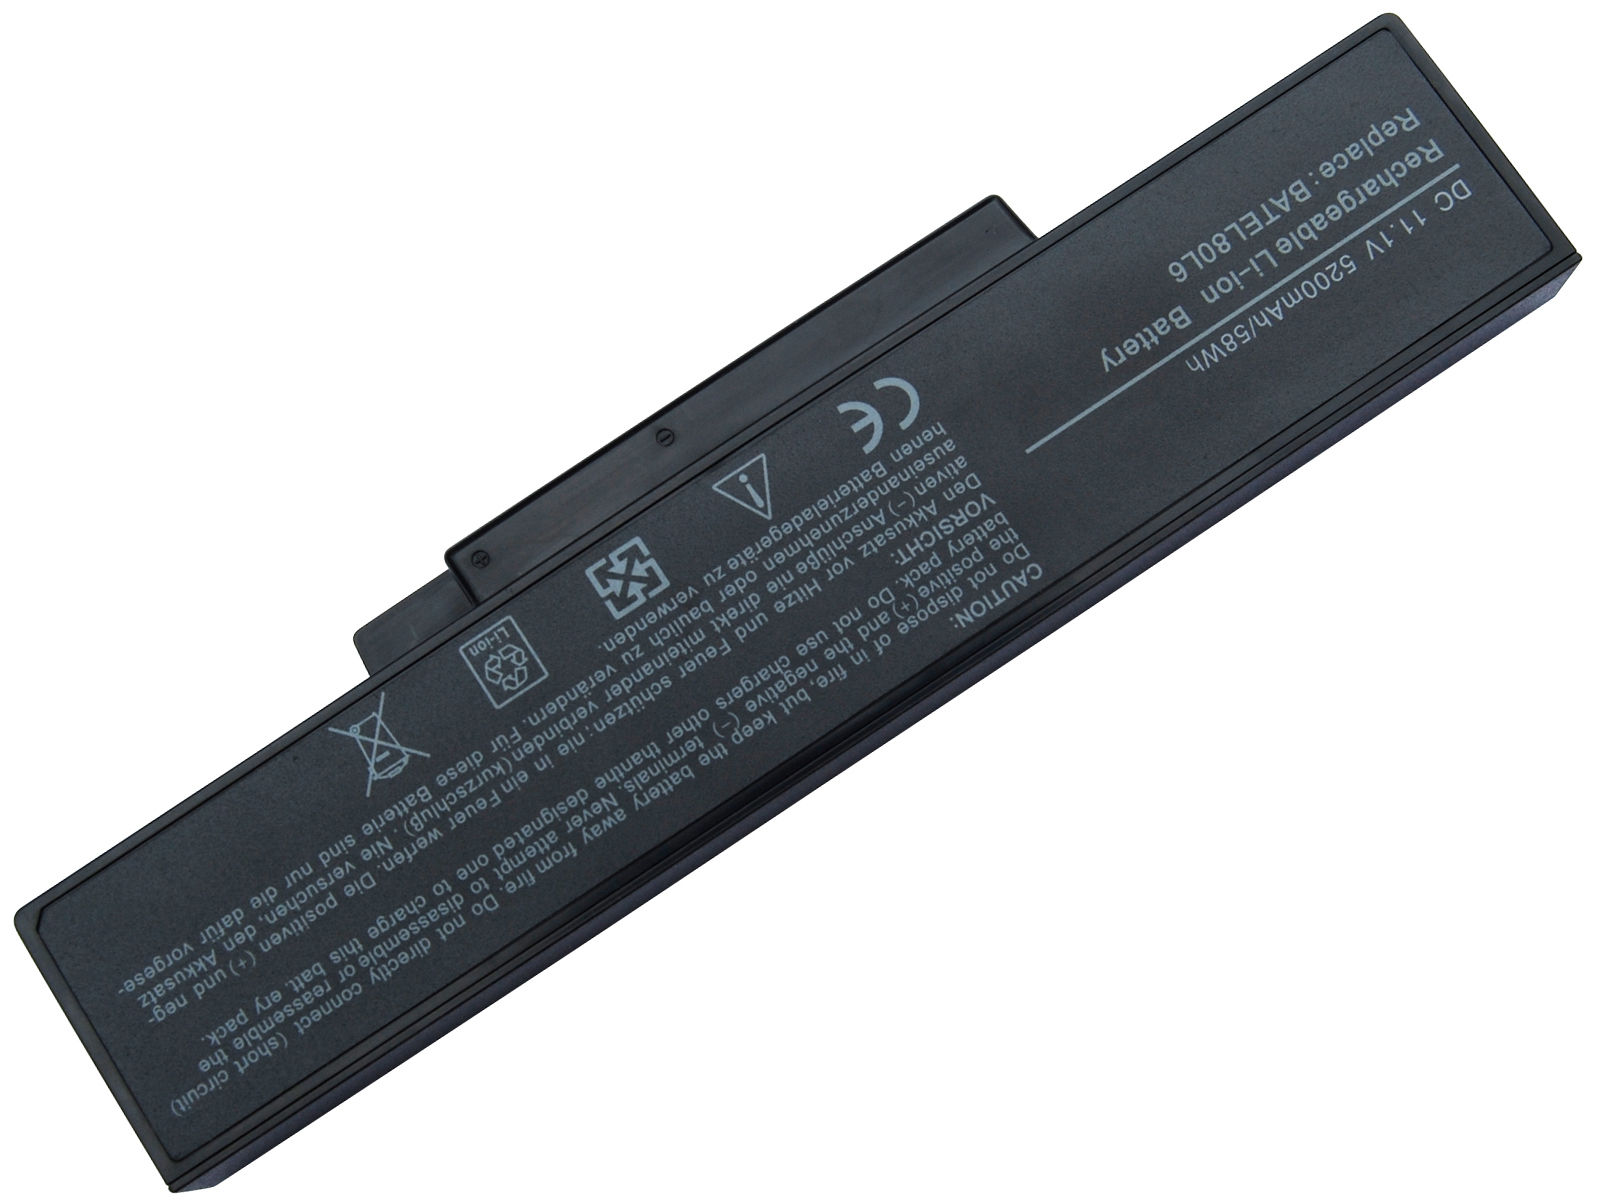 Replacement Msi GT740 Battery